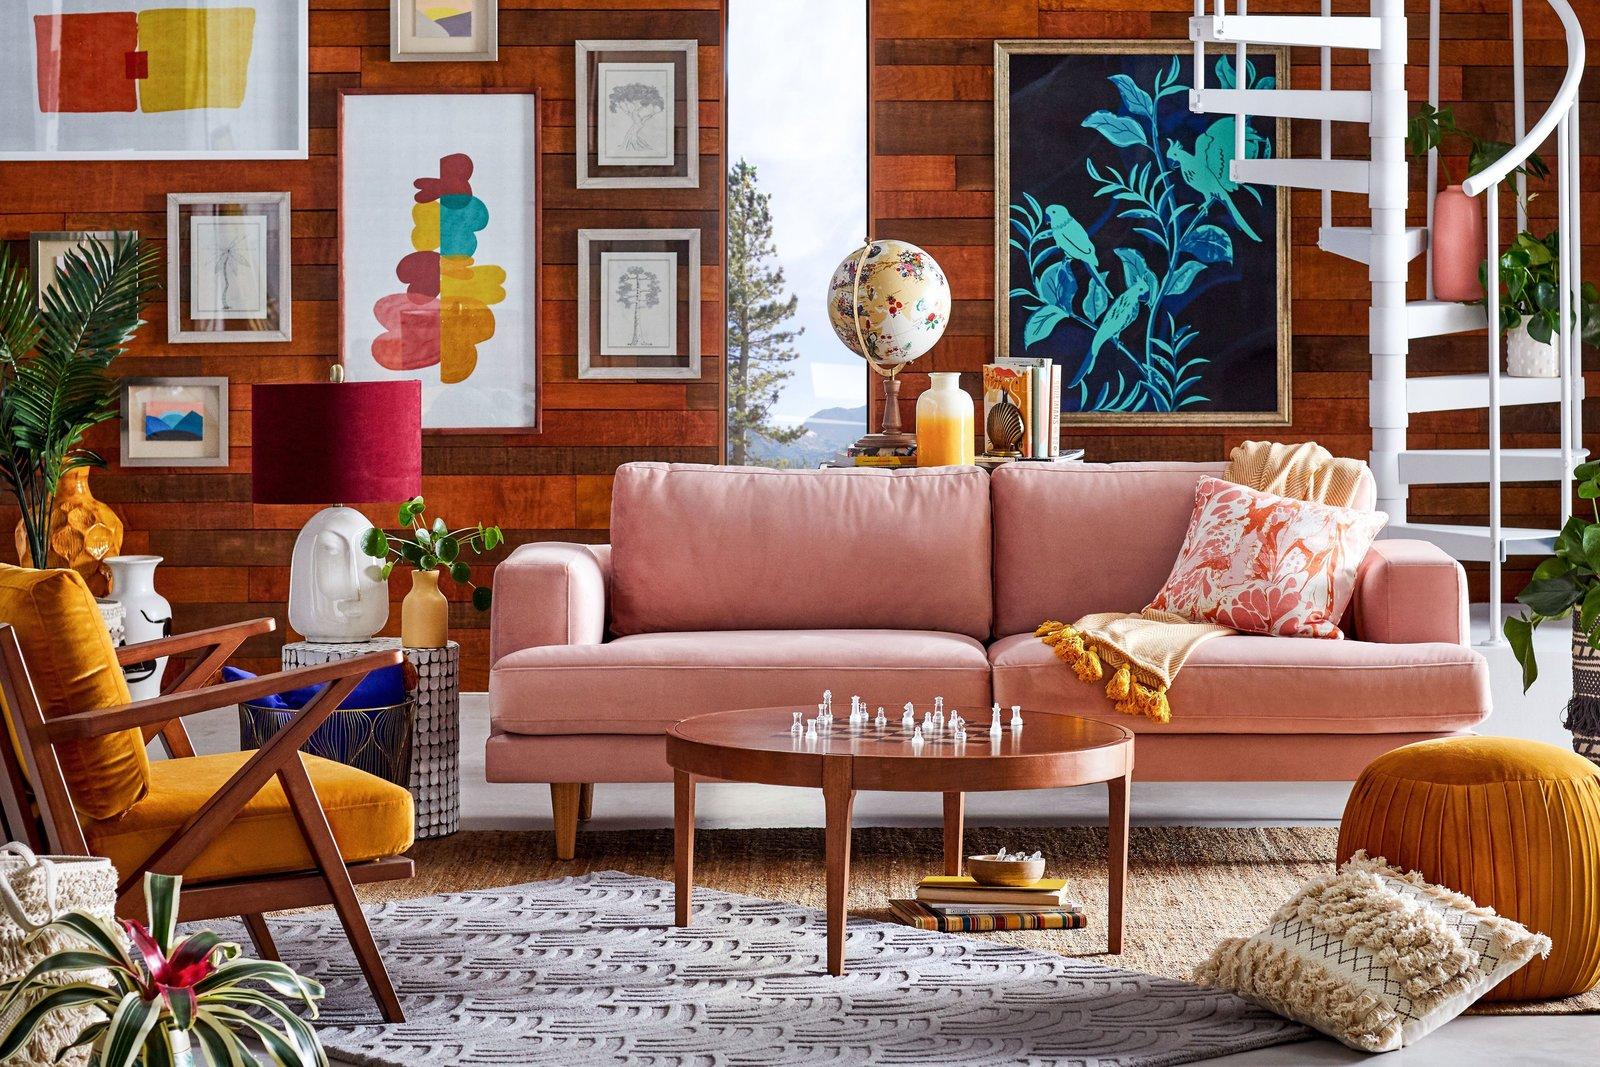 Drew Barrymore's Boho and Midcentury-Inspired Home Collection Starts at $18 a Pop